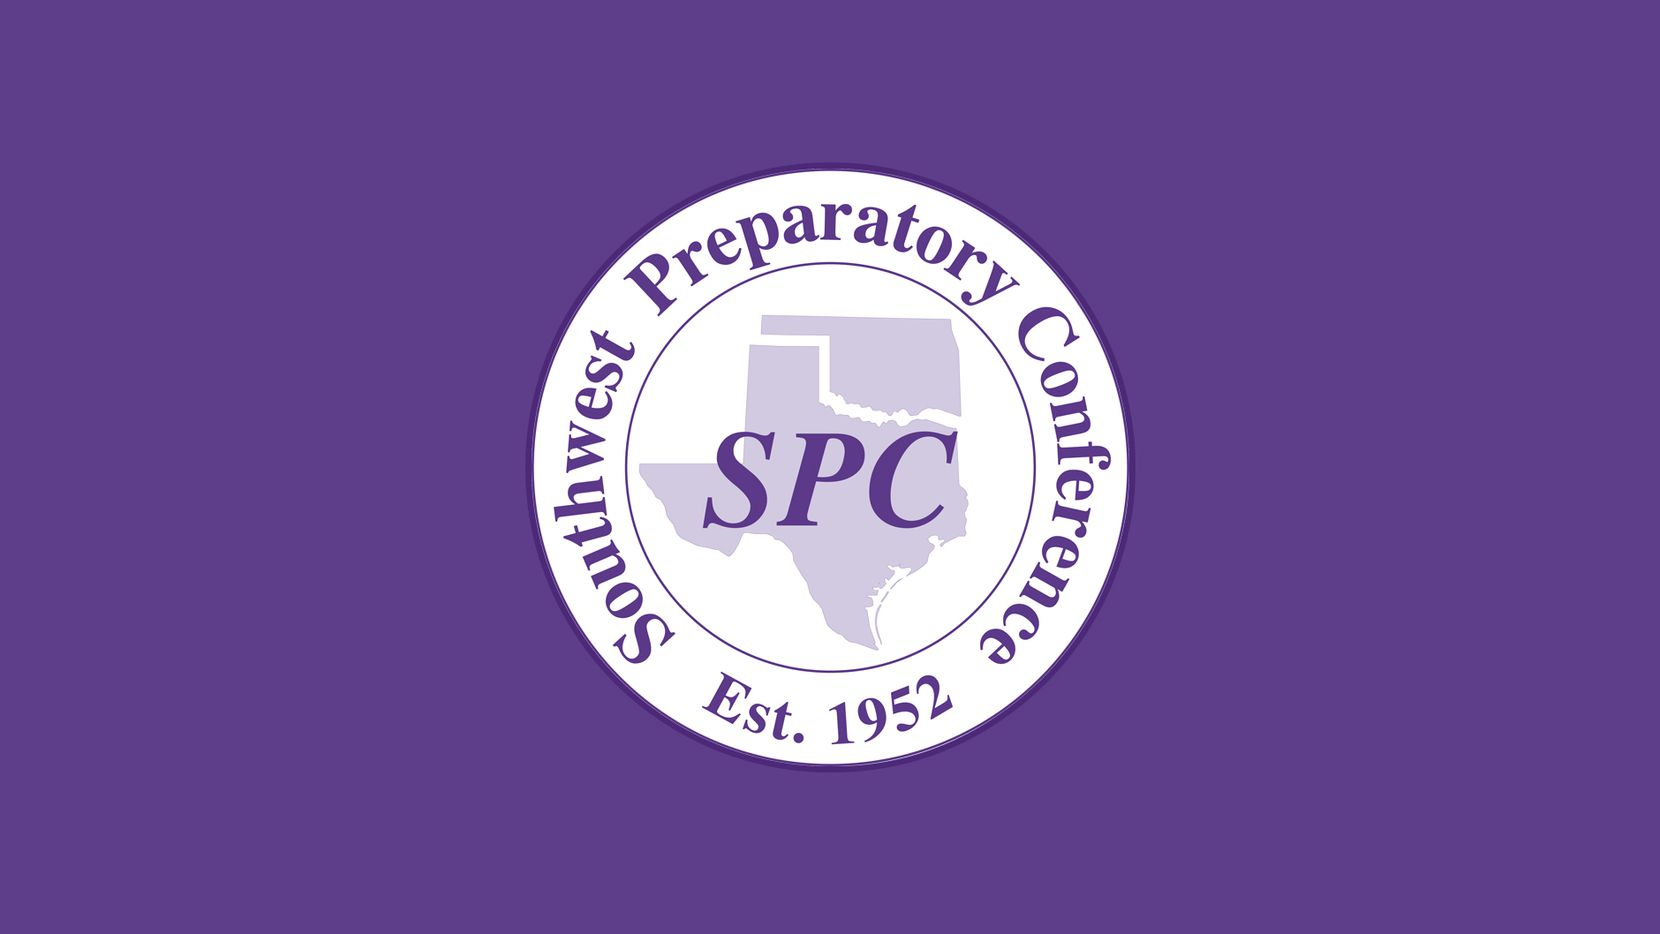 The 2018 Southwest Preparatory Conference fall championships are this weekend in Dallas.